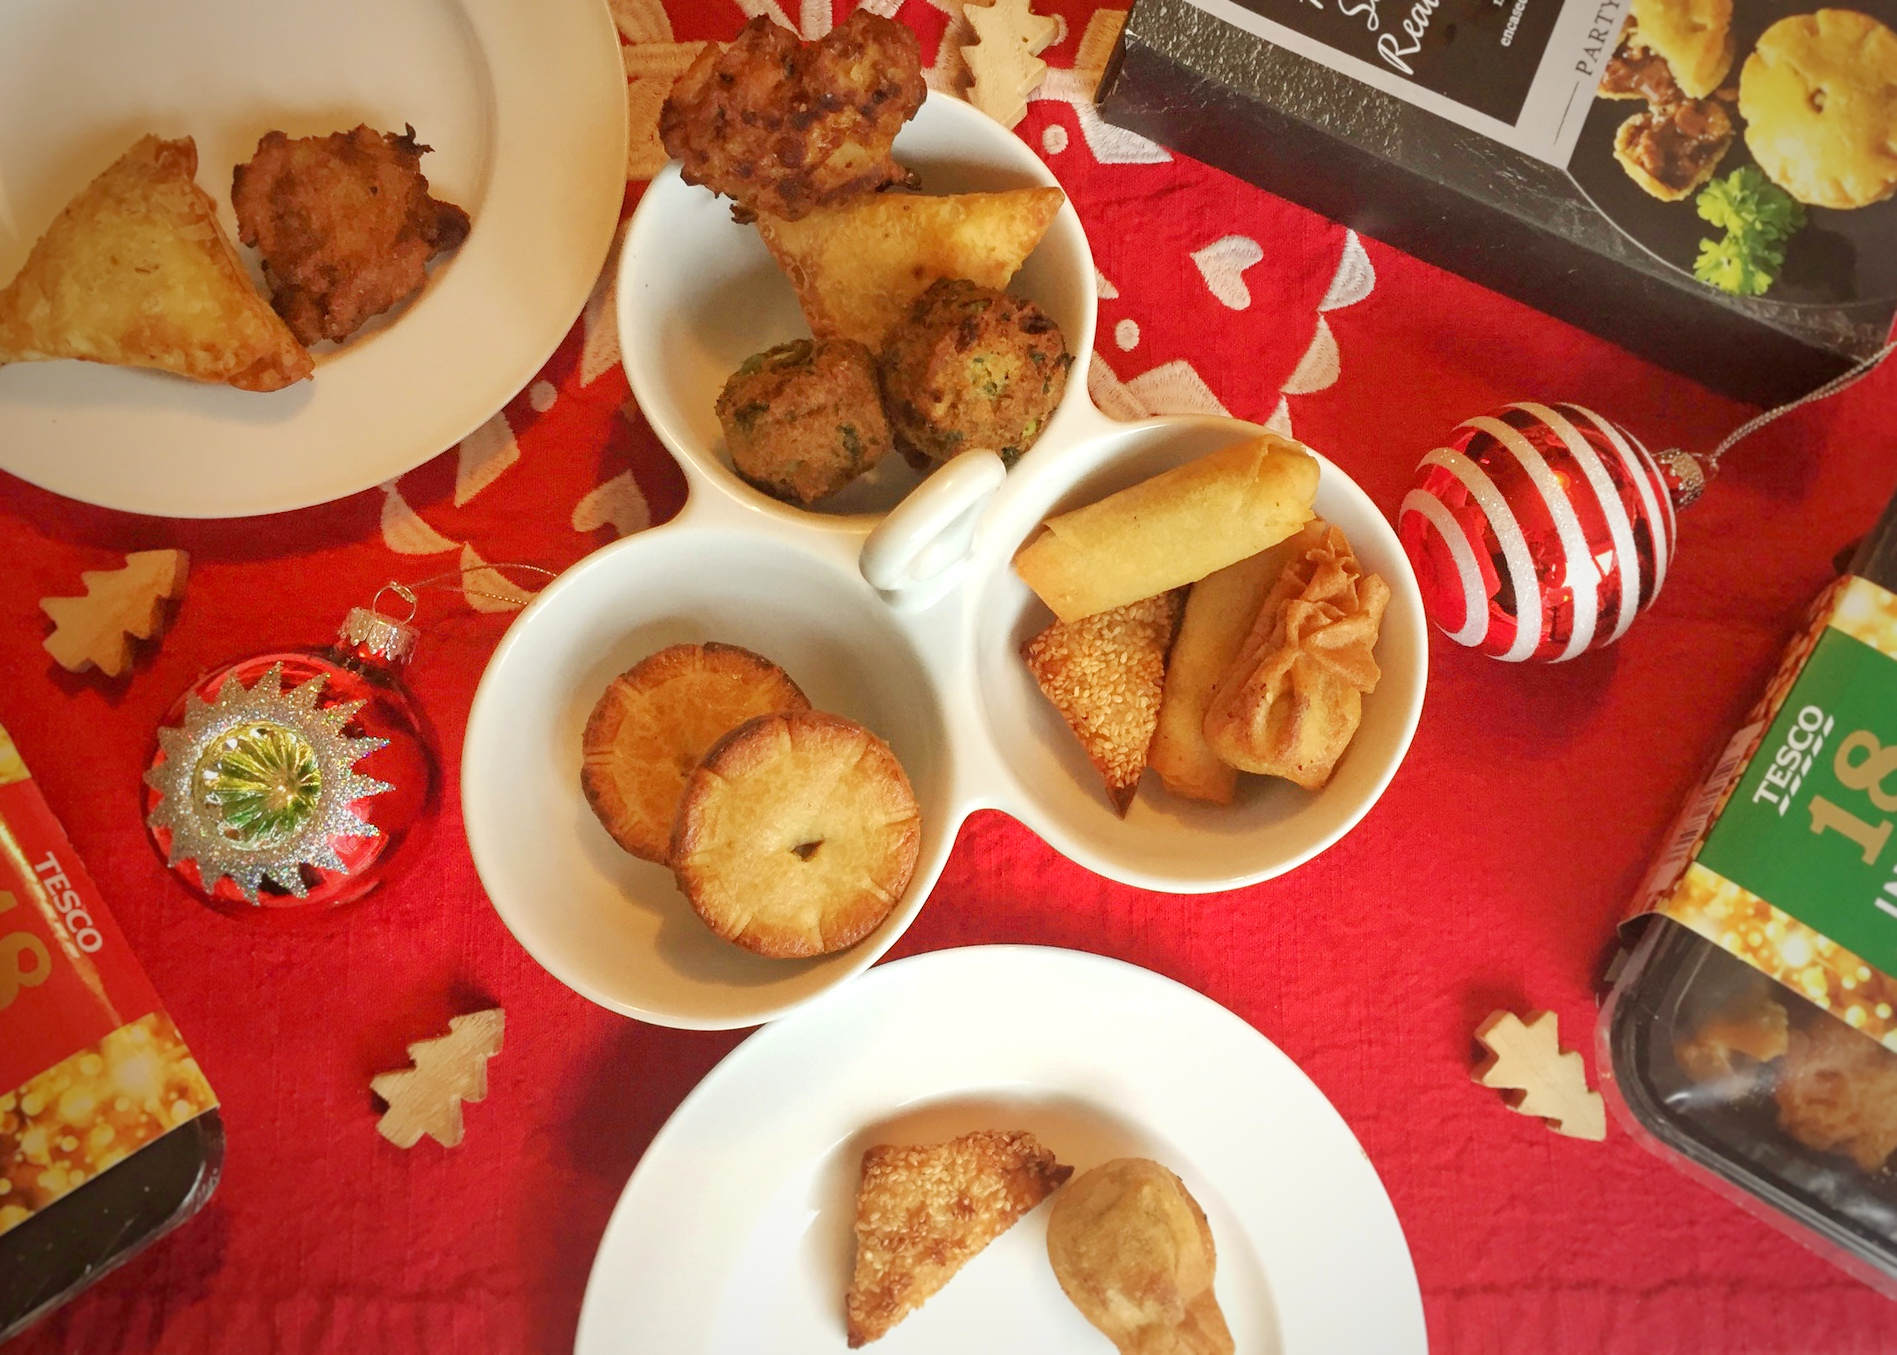 Tesco Orchard Christmas Party Food My Daily Obsessions